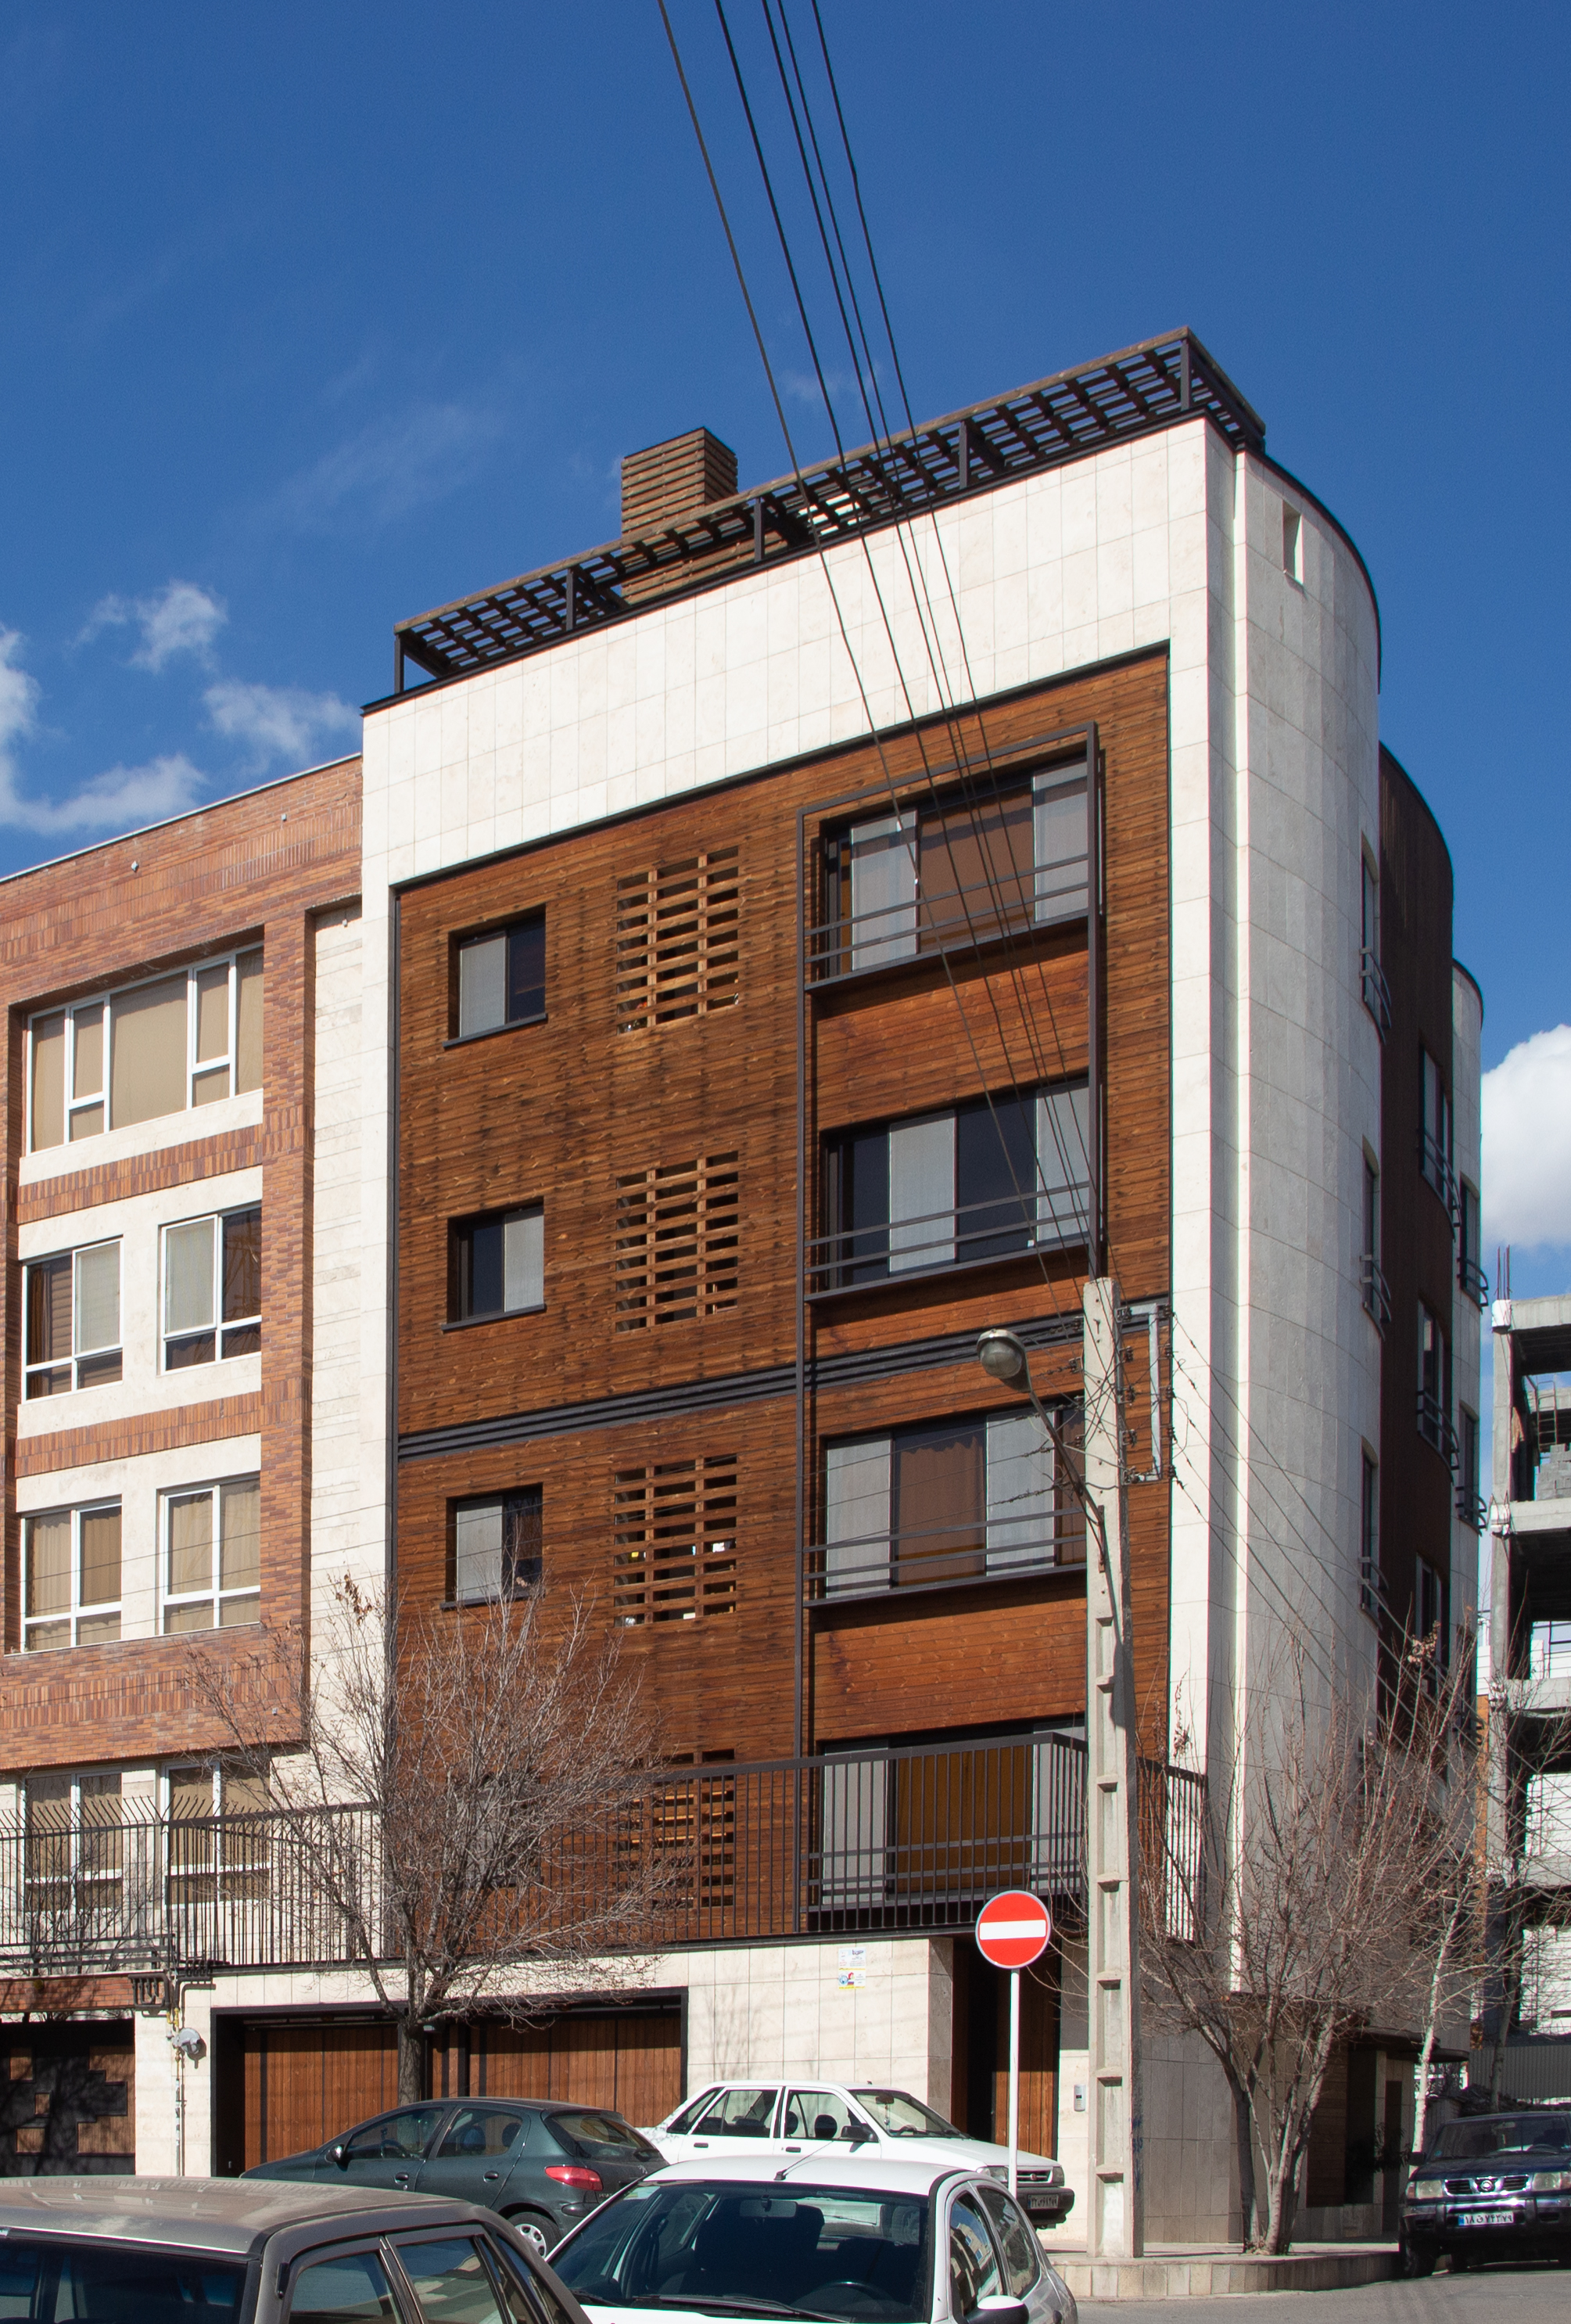 HAGHIGHAT RESIDENTIAL APARTMENT